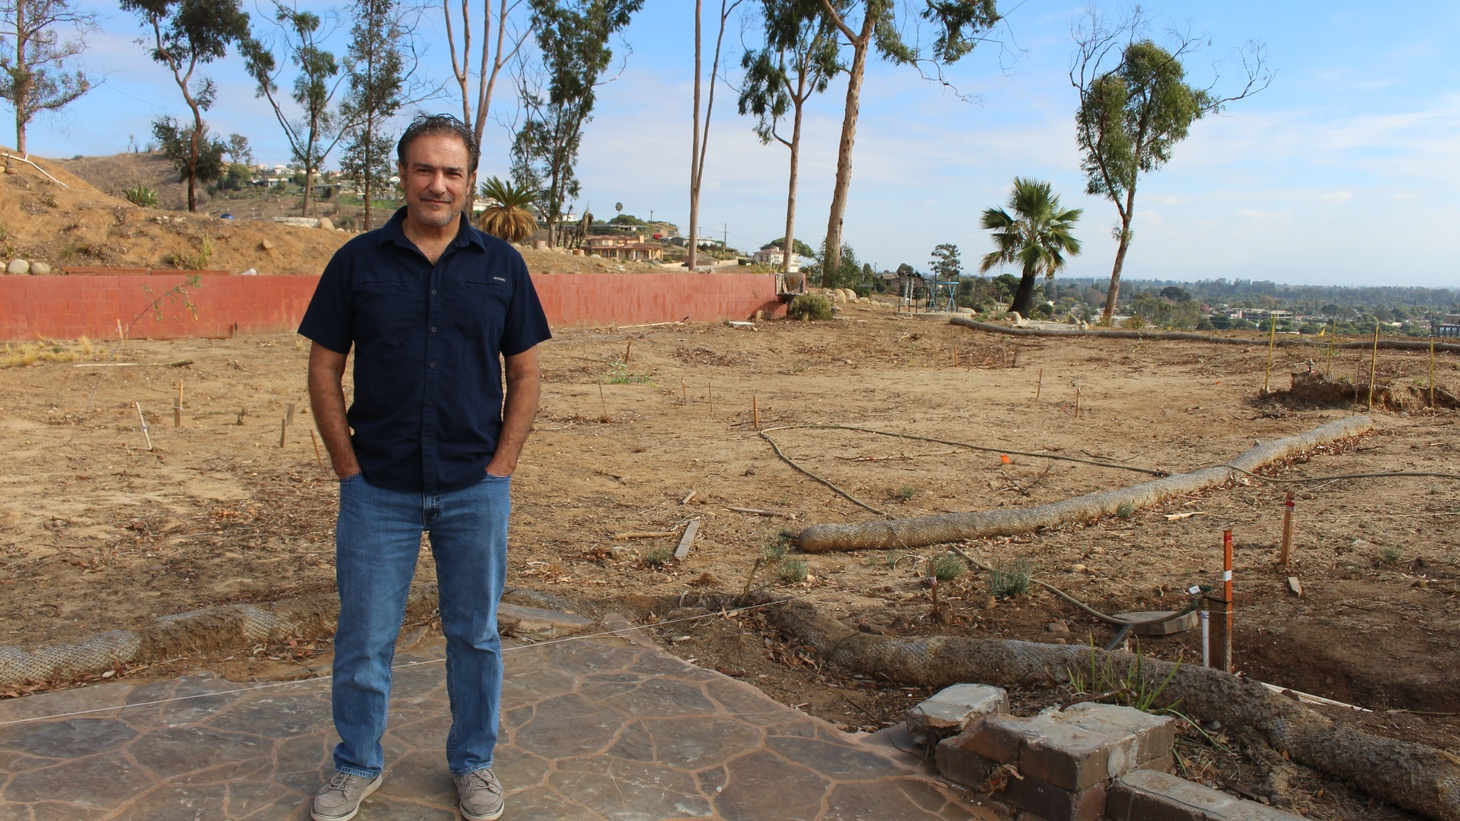 The remnants of Ventura resident Nick Bonge's burn home have been cleared, but he's still waiting to get the permits he needs to start rebuilding